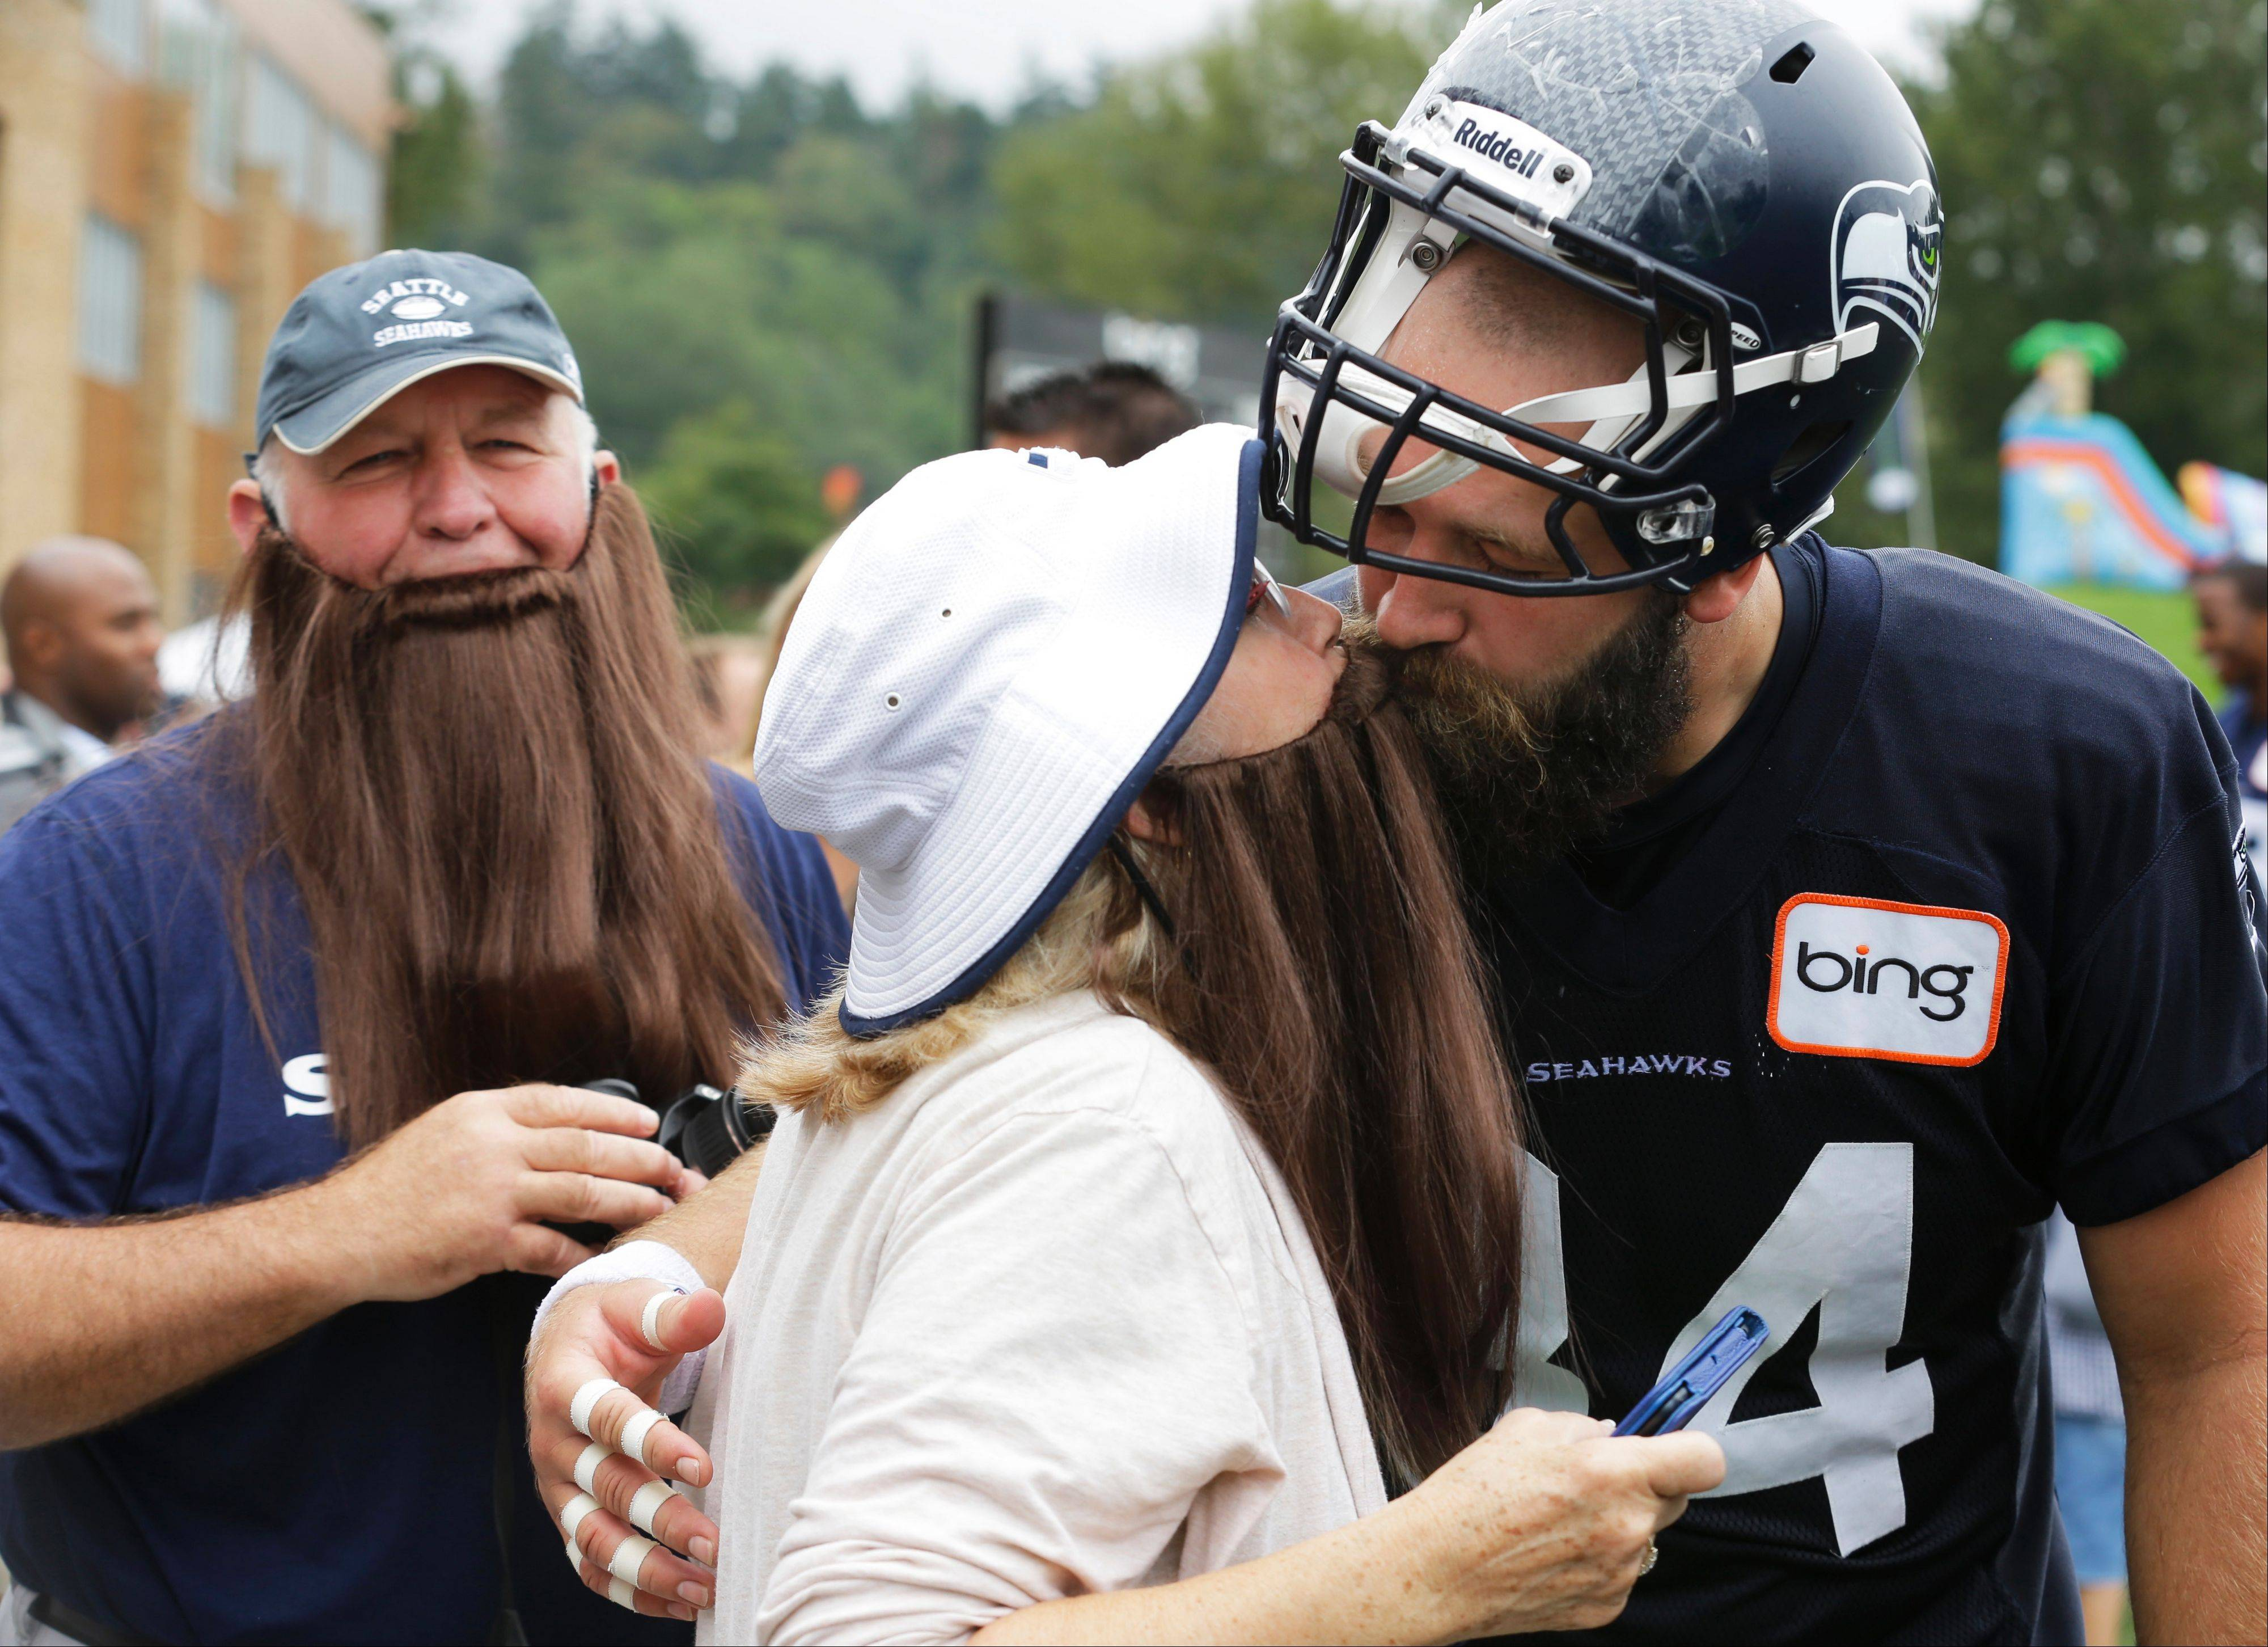 Seattle Seahawks tight end Sean McGrath kisses his mother, Nita McGrath, as his father Pat McGrath watches. The McGraths wore fake beards in tribute to their son, who was in training camp with the team. Sean was later cut and signed by the Kansas City Chiefs.